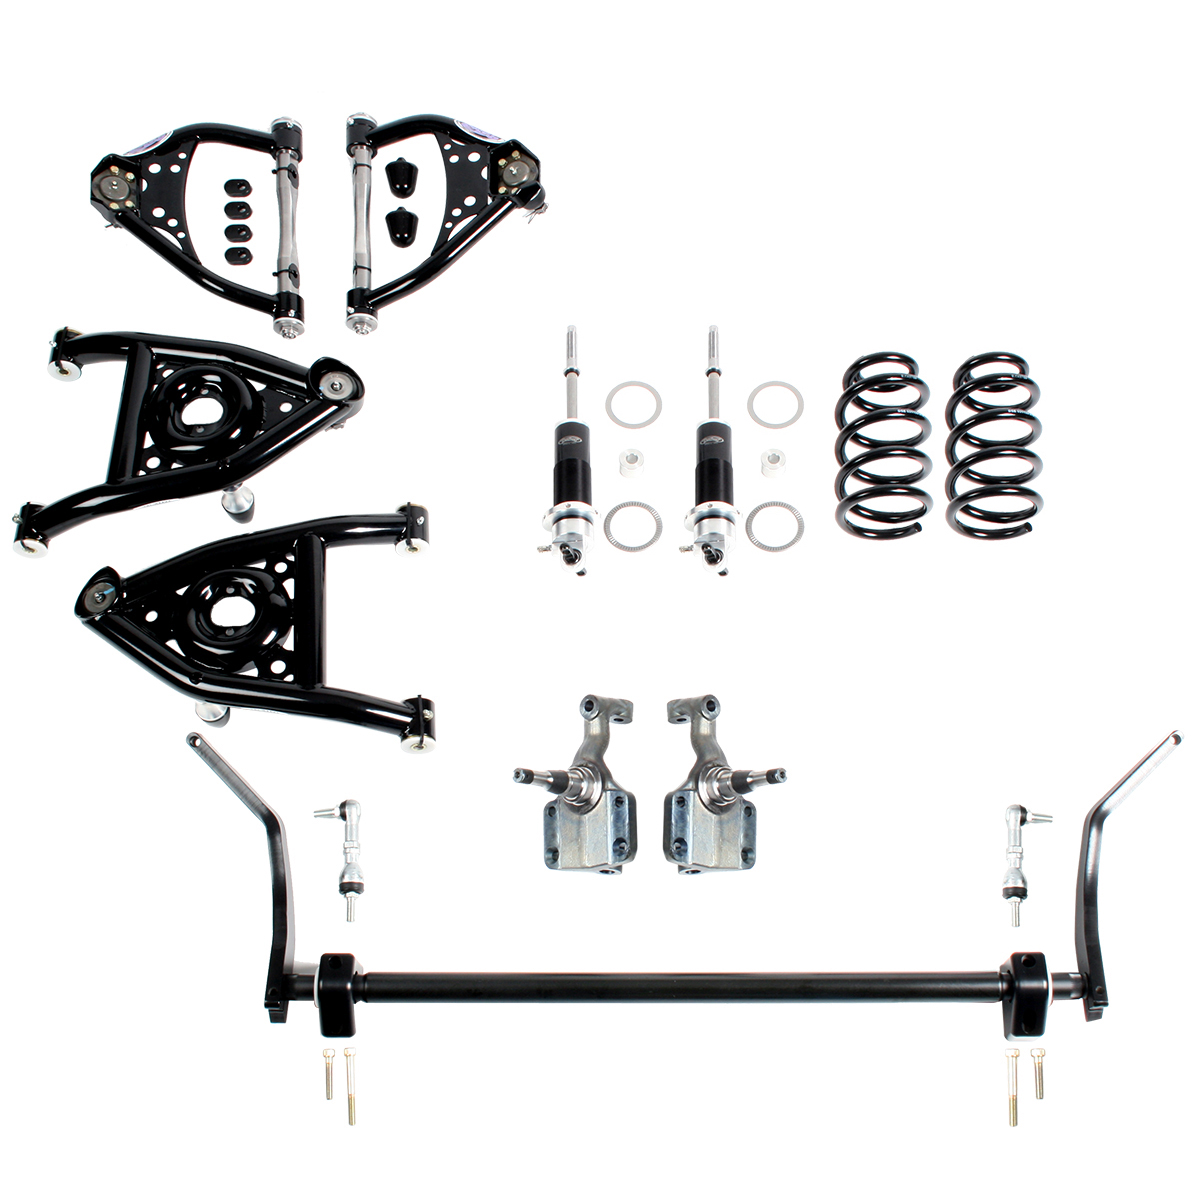 Detroit Speed  Speed Kit 2 with Splined Sway Bar 64-66 A-Body BBC Double Adjustable Shocks w/Remote Canister BBC